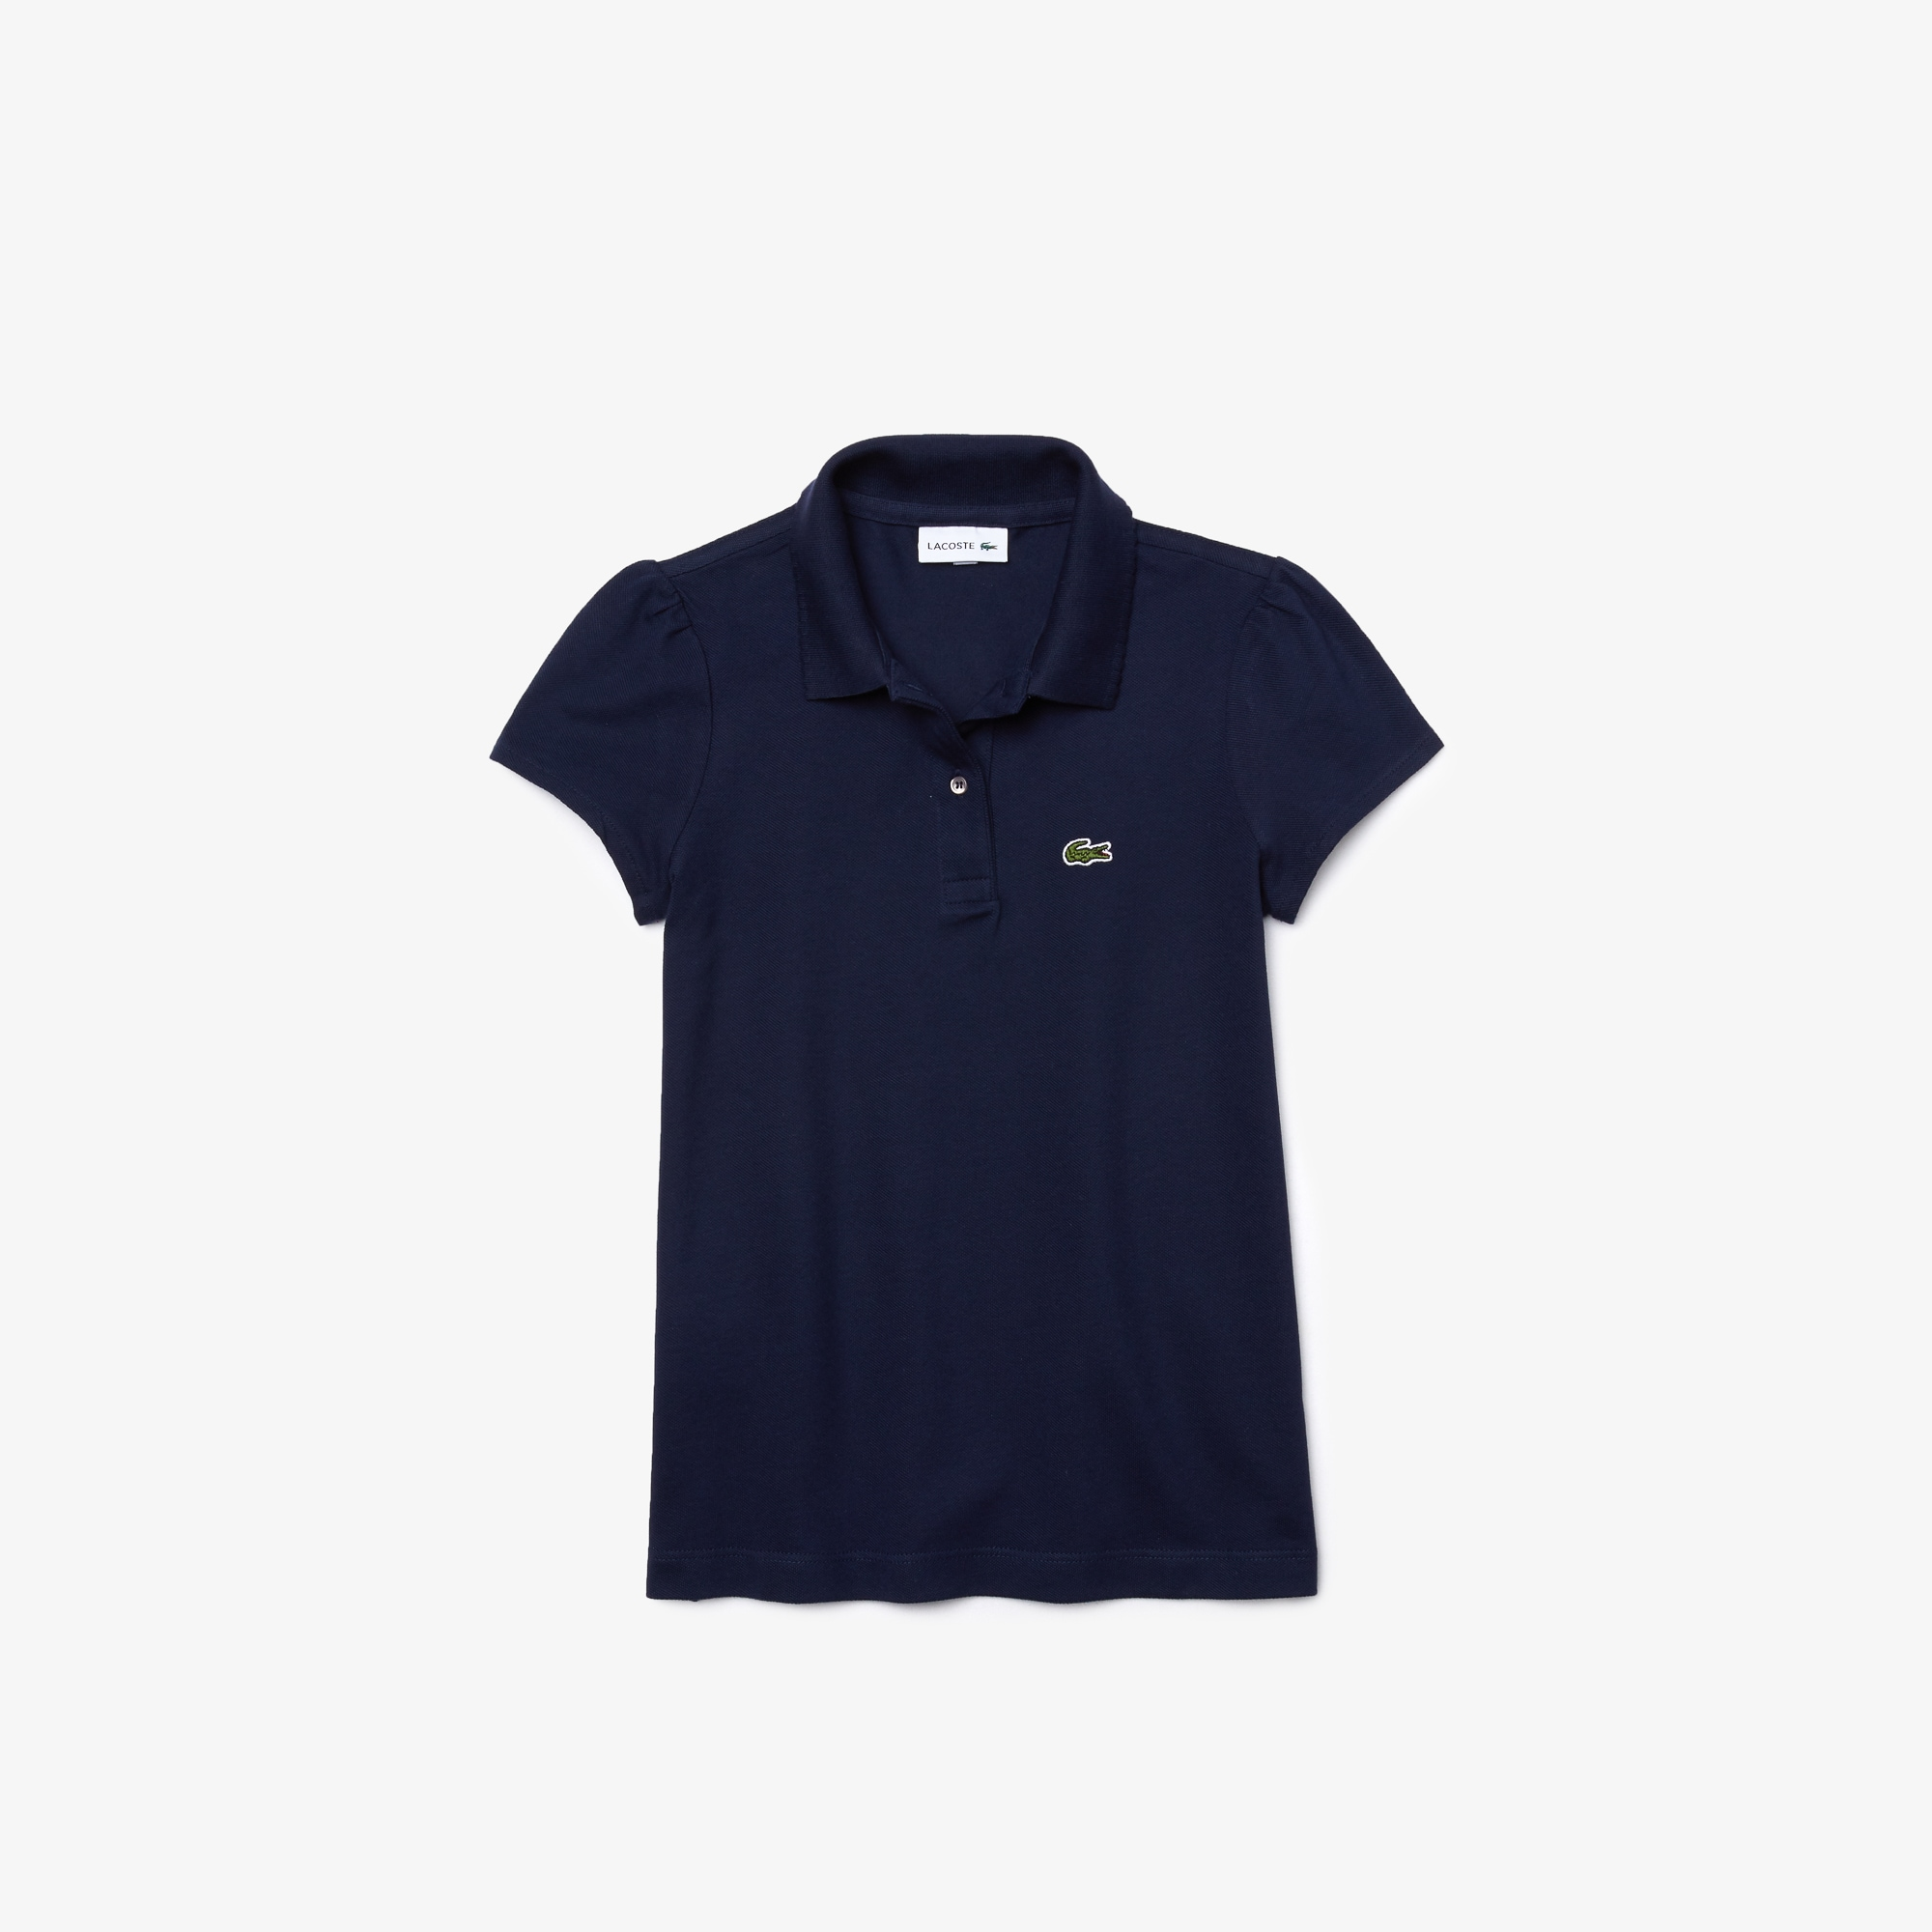 110d8c8e3 Polo shirts, shoes, leather goods | LACOSTE Online Boutique